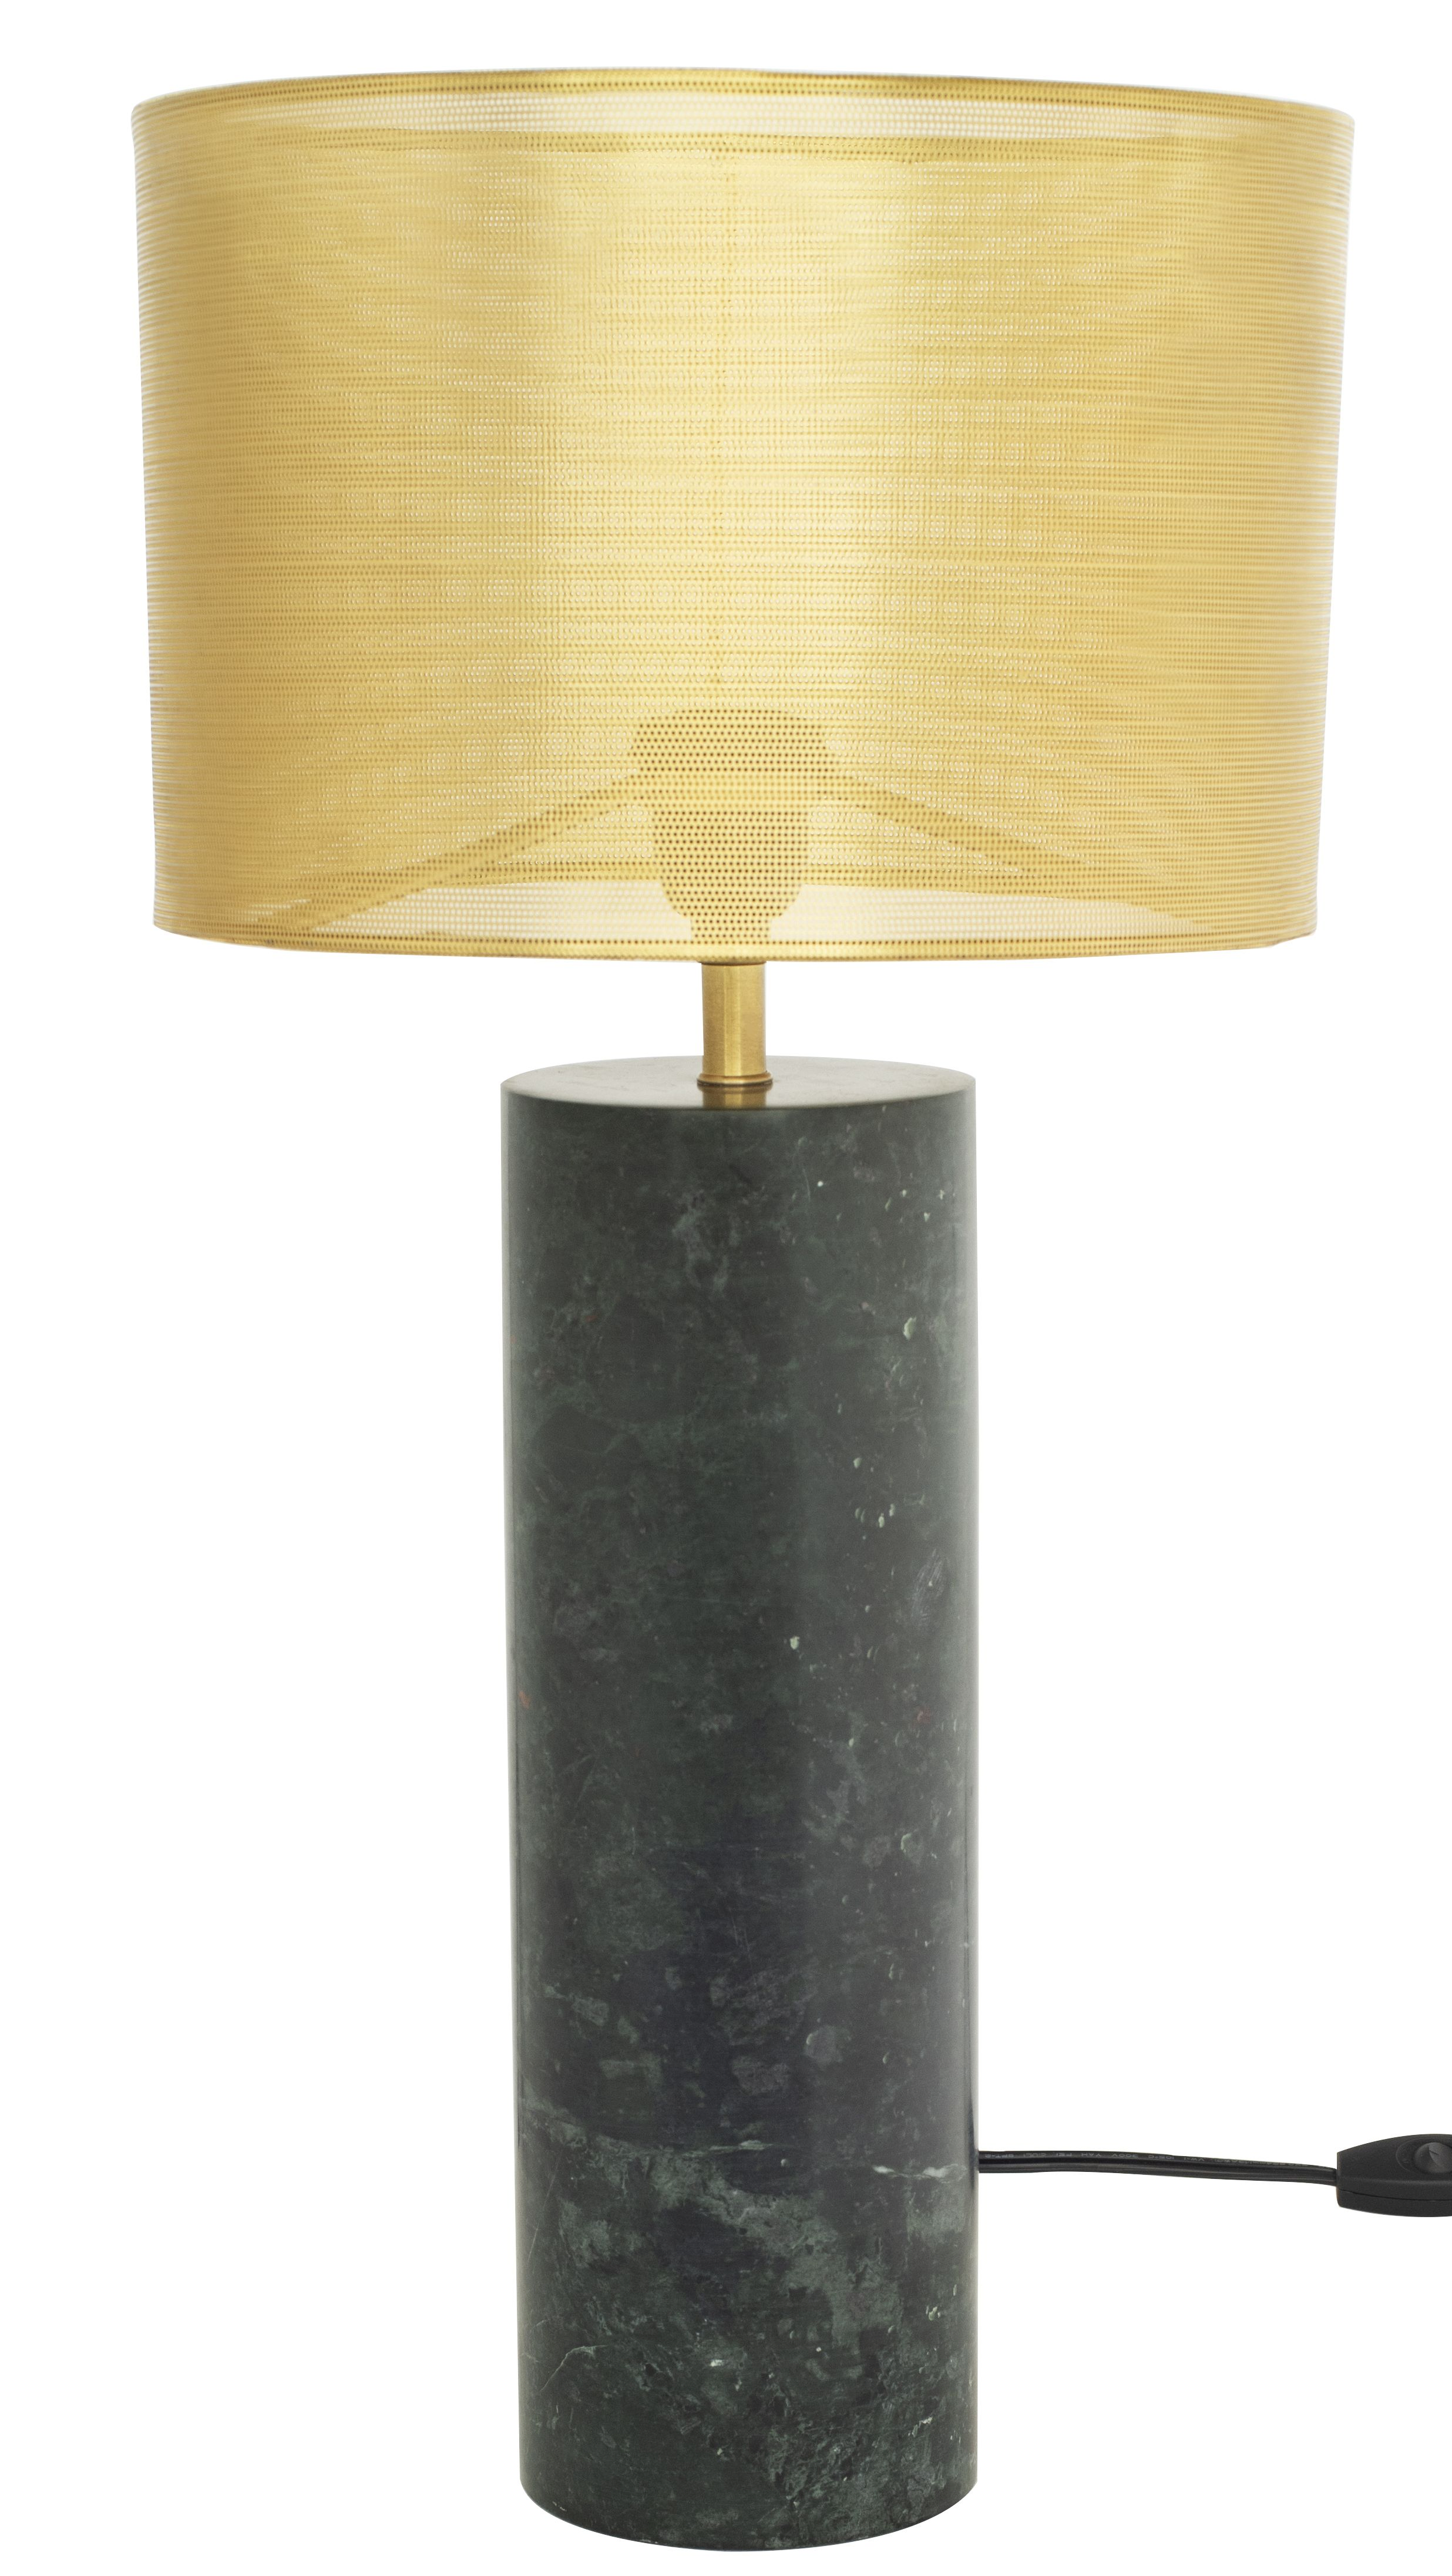 Green Marble Defines The Cyrine Table Light A Bold Minimalist Cylindrical Base Supporting A Black Fabric Rectangular Shade P Table Lamp Lamp Table Lamp Sets